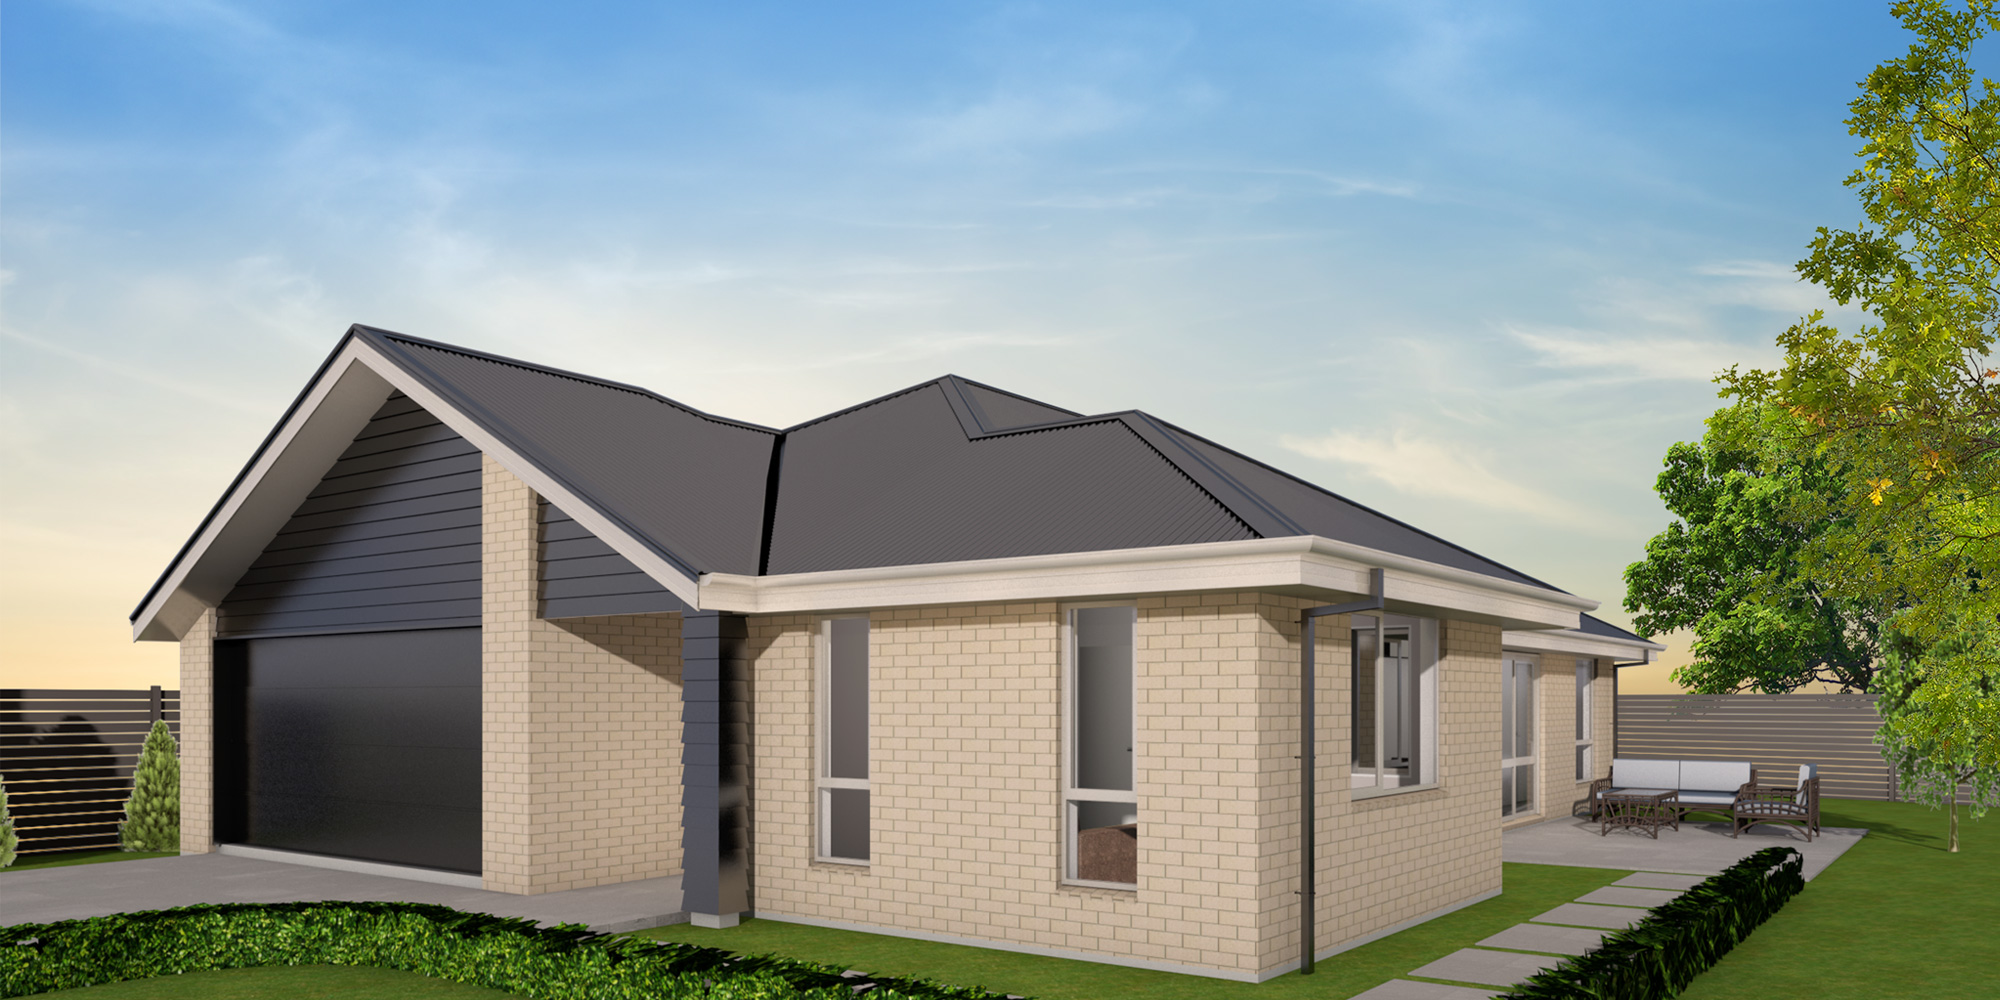 - The Wigram features an open plan kitchen, dining and family area; ideal for entertaining. The separate living area offers privacy whist still allowing plenty of light through the designer double french doors.